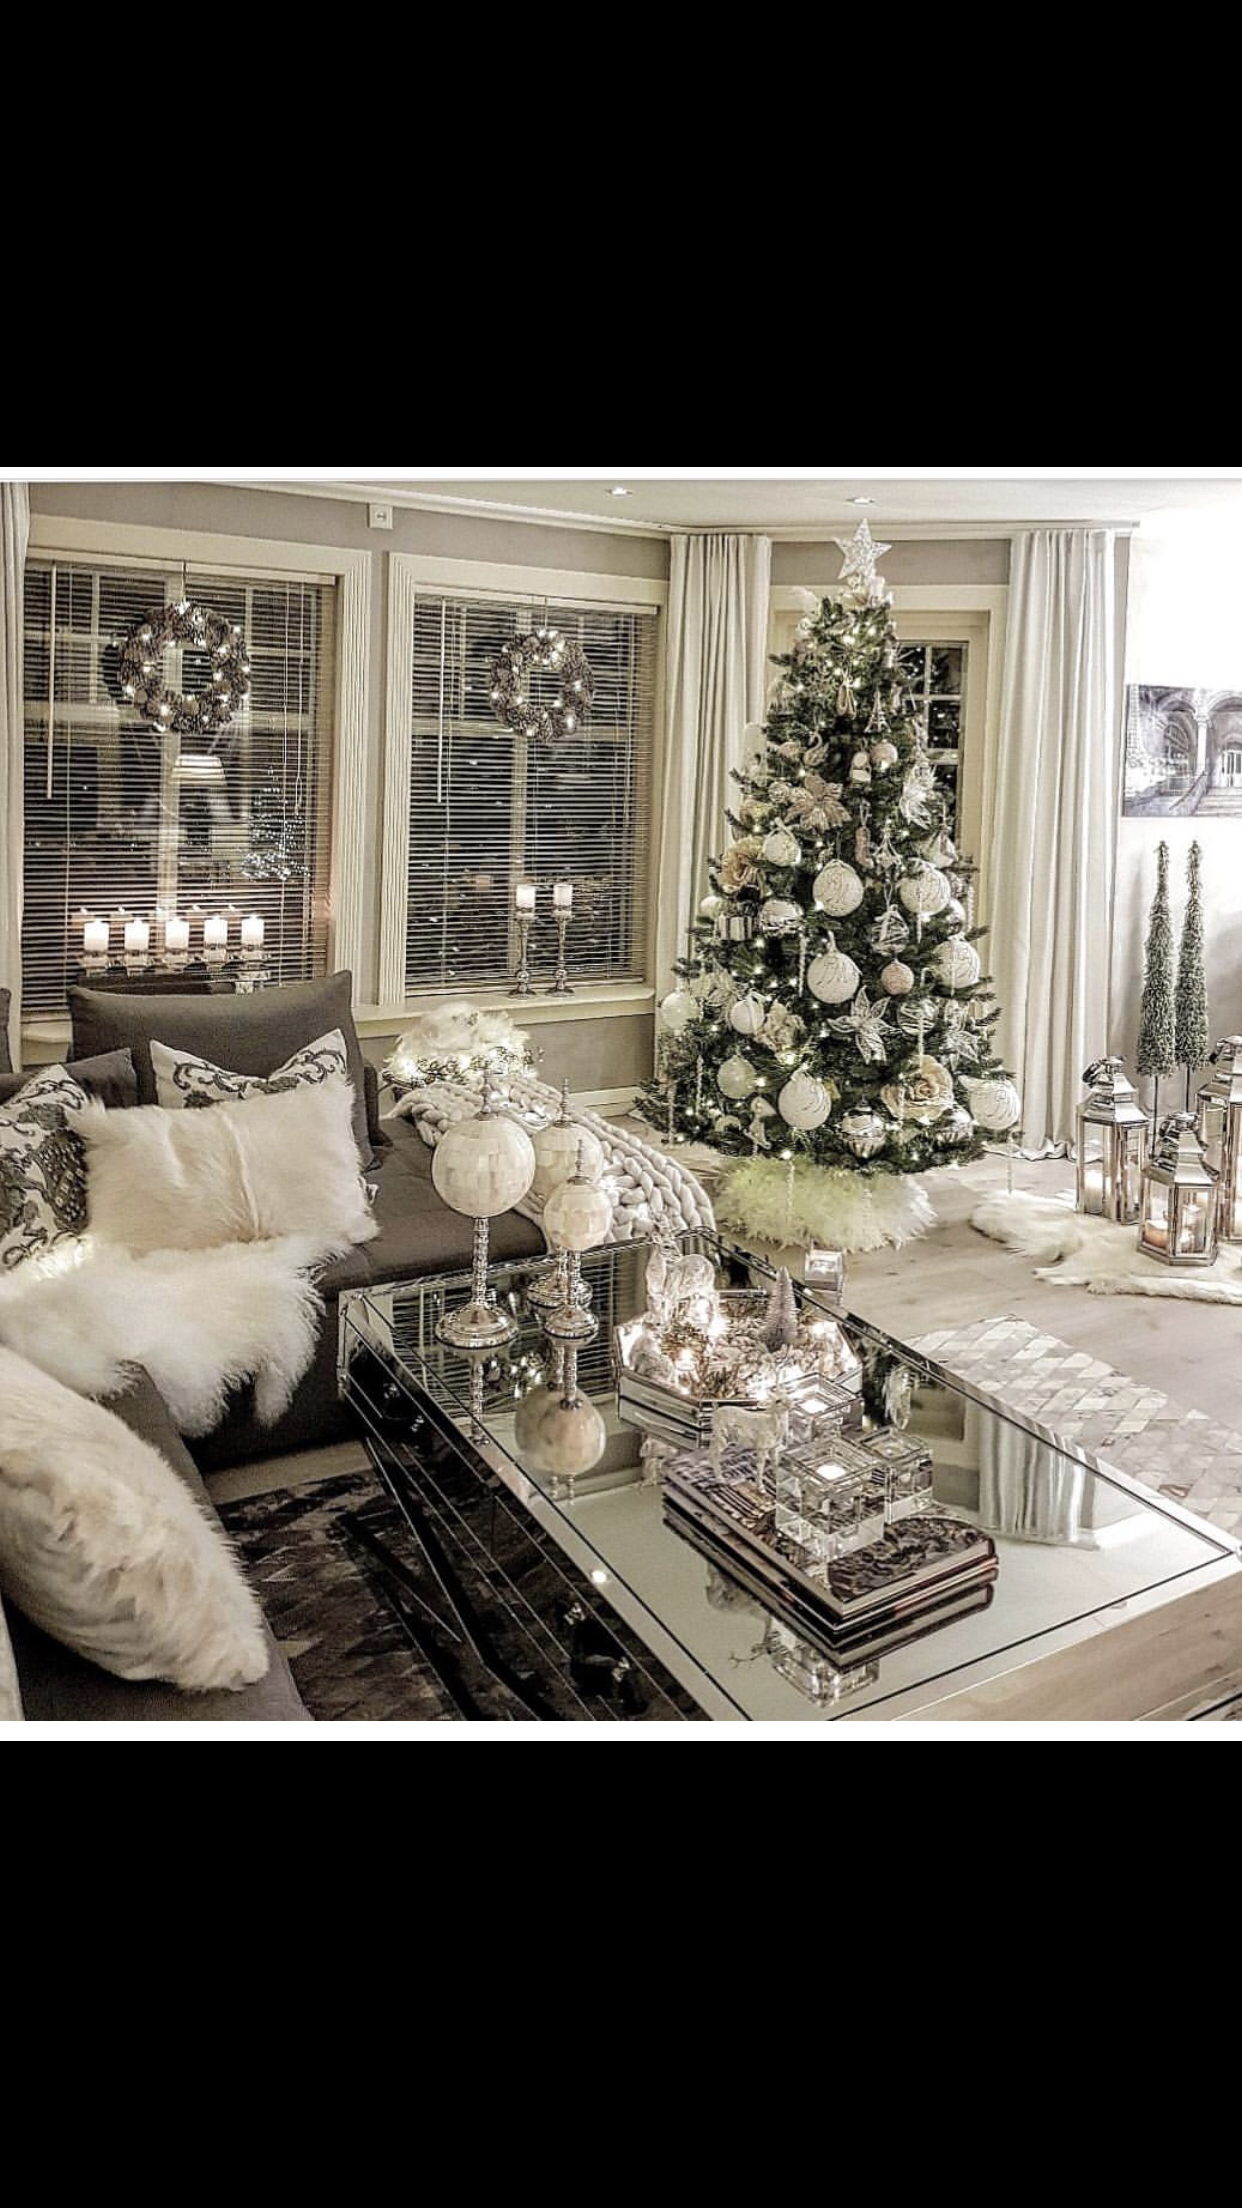 Pin By Qudsia Syed On Wohnen White Christmas Decor Christmas Decorations For The Home Elegant Christmas